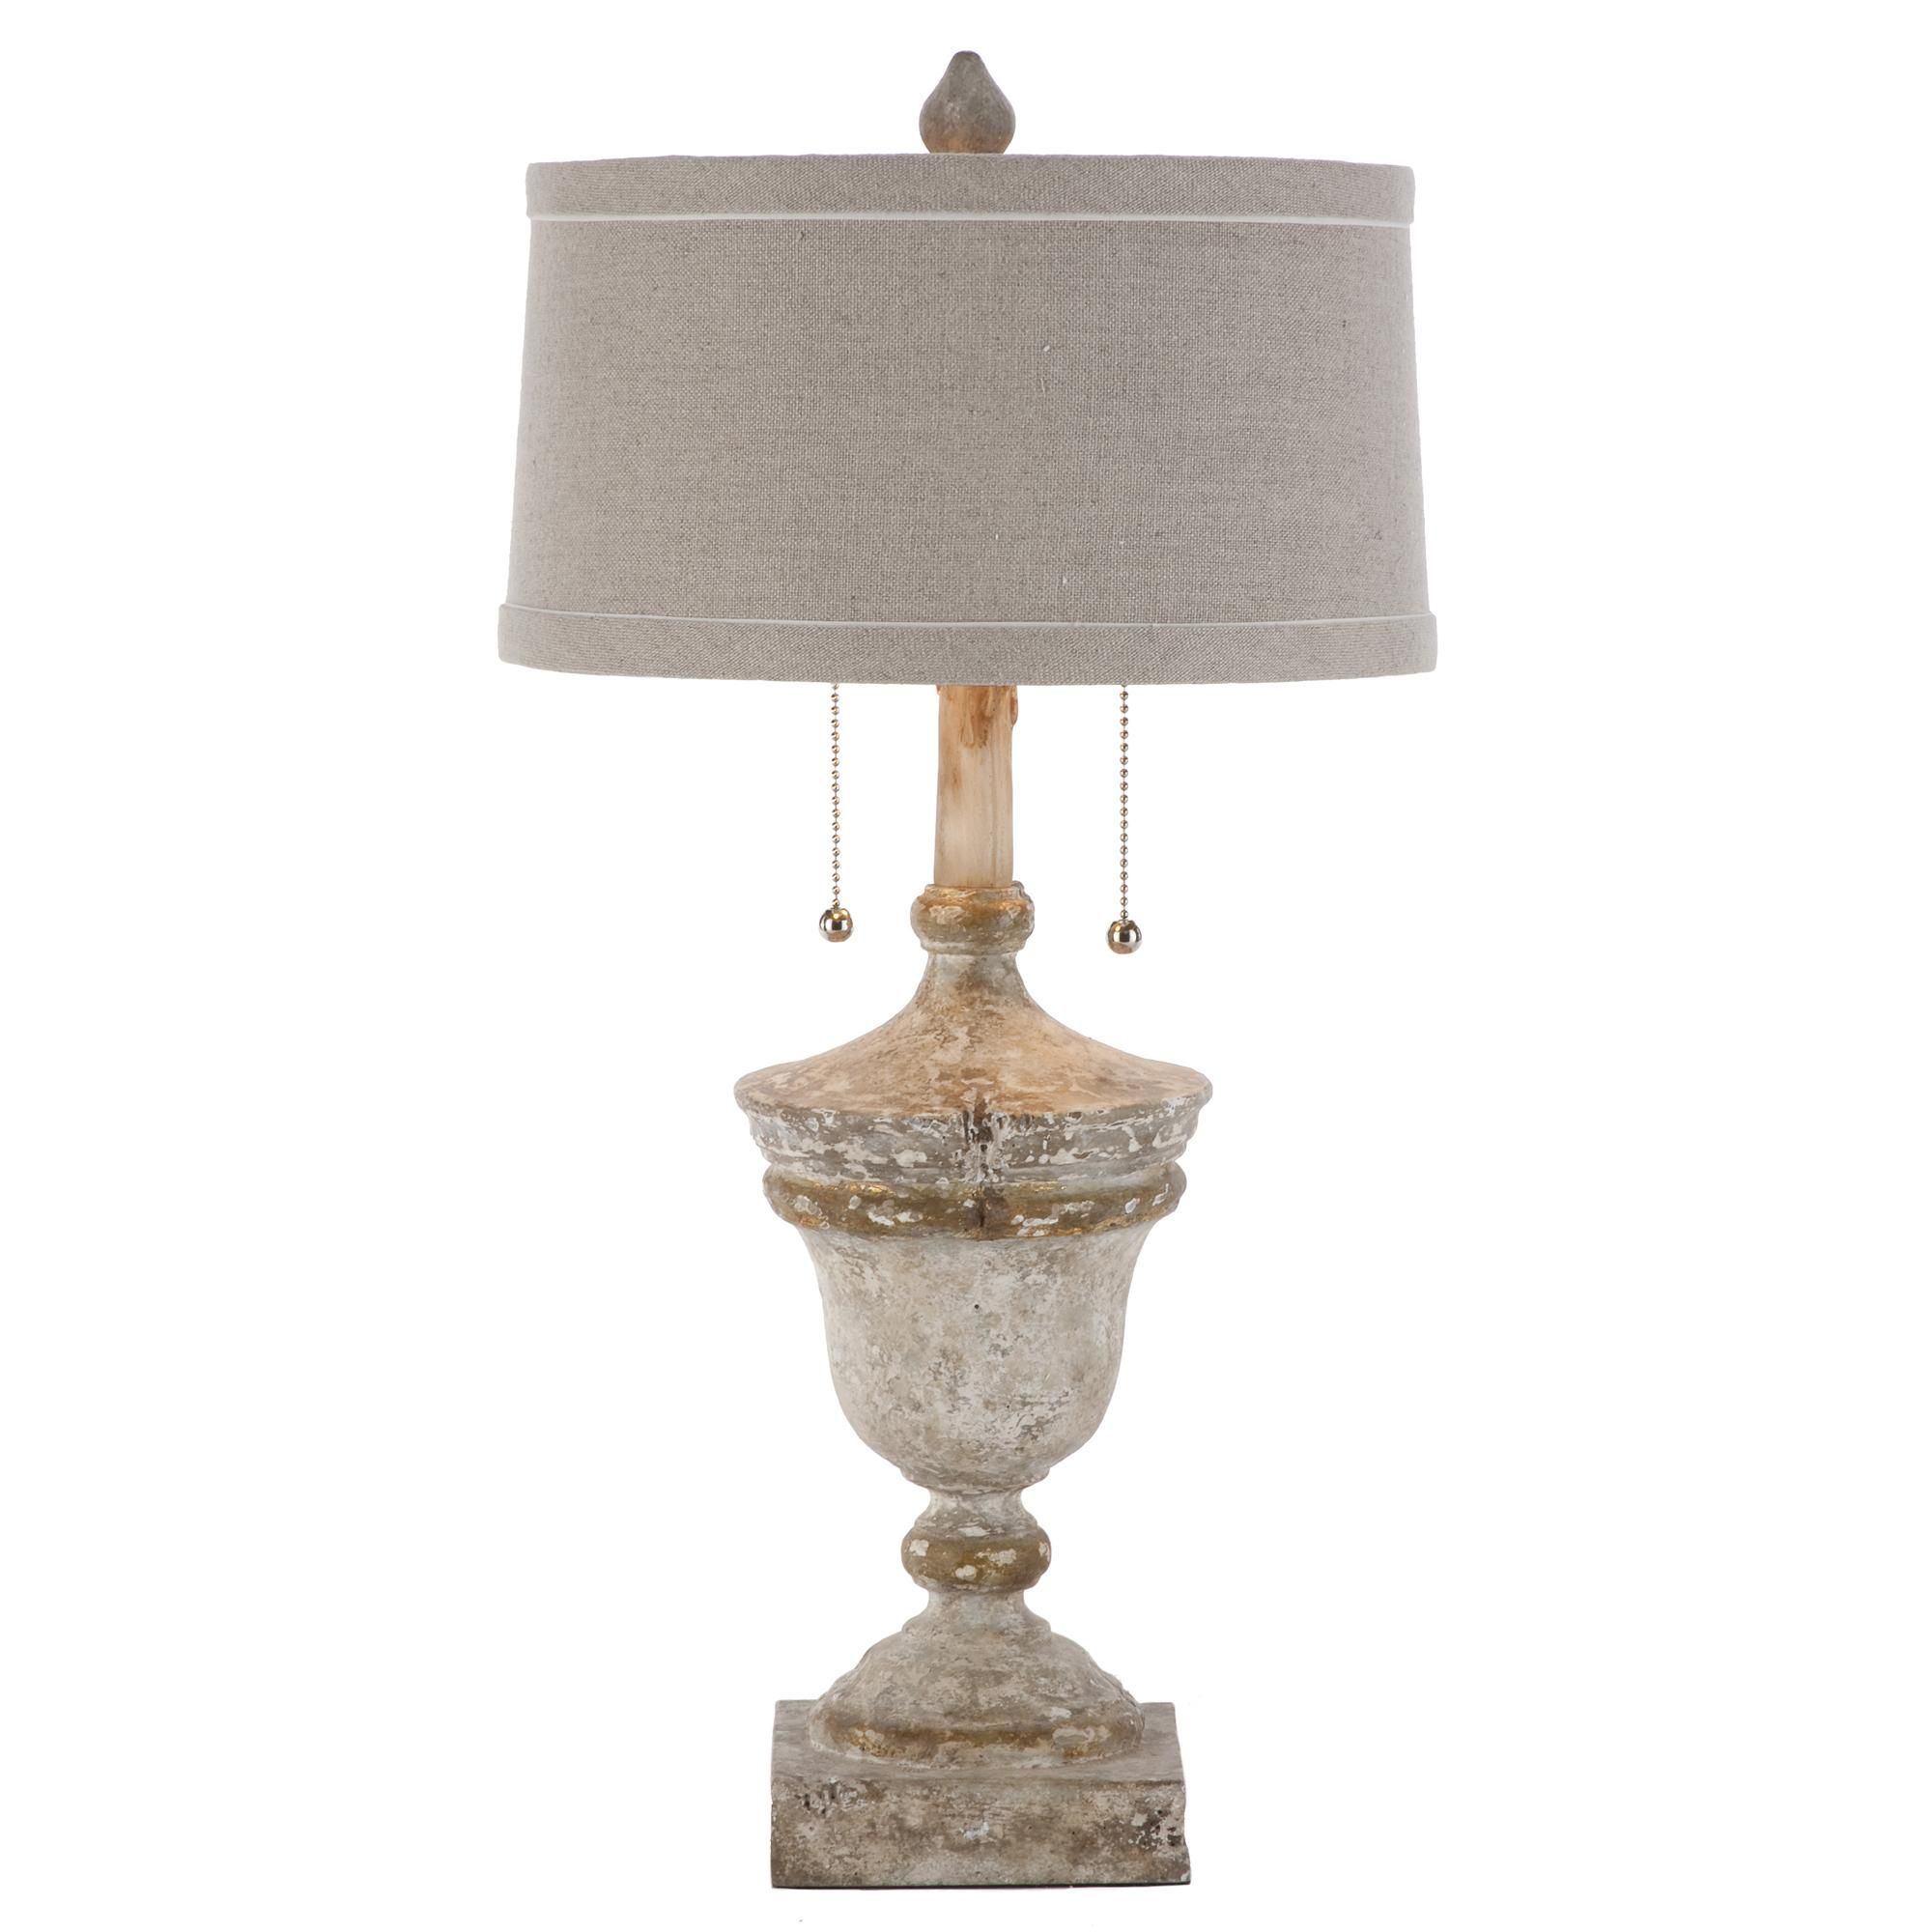 Elegance Is Born From Found Objects 340 24 H Differenttypesoflamps Shabby Chic Lamp Shades Gold Table Lamp Shabby Chic Lamps